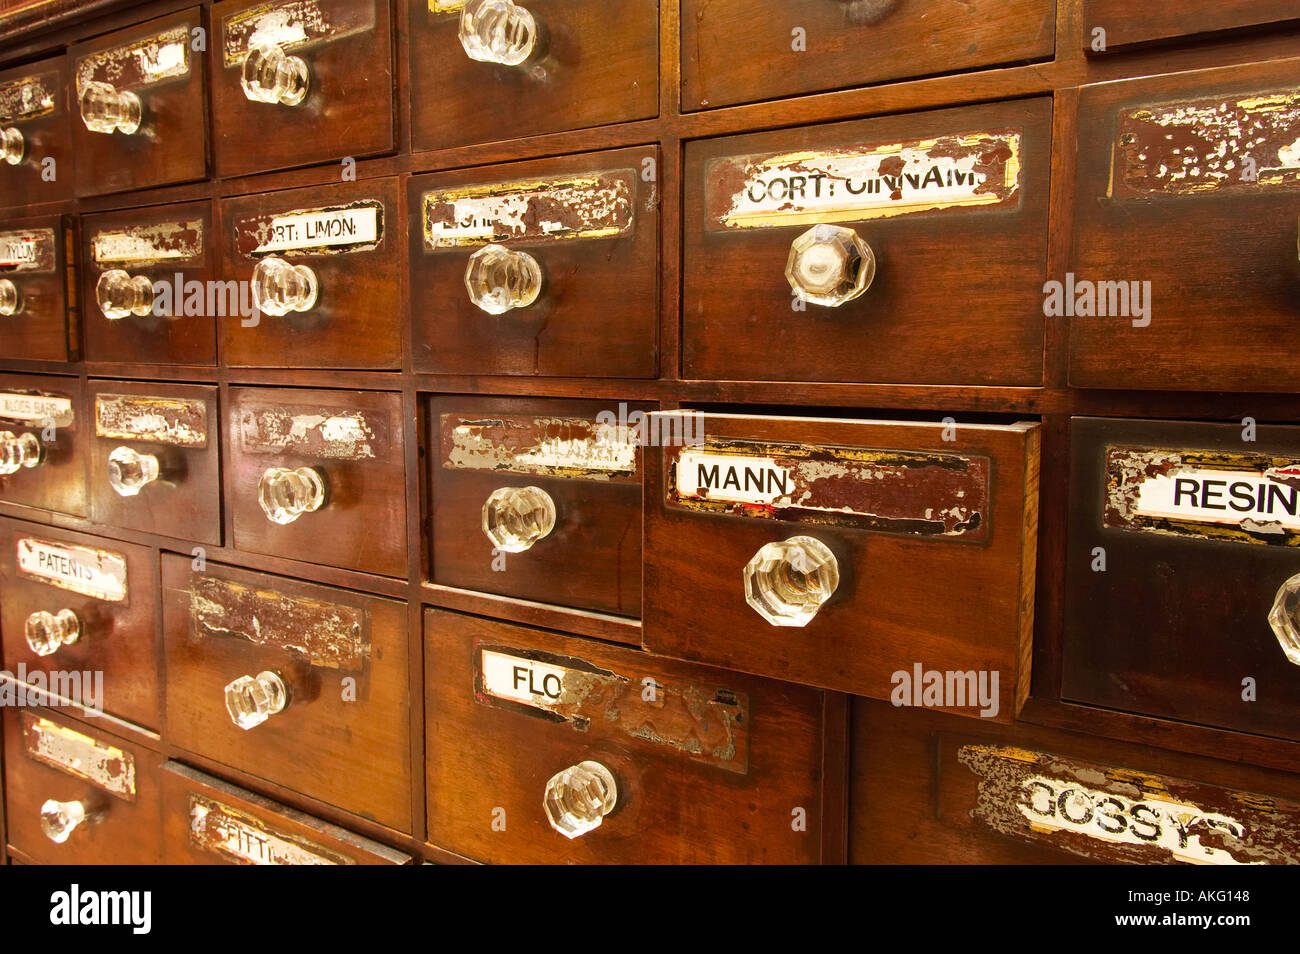 Antique apothecary chest of drawers UK - Antique Apothecary Chest Of Drawers UK Stock Photo: 2769223 - Alamy